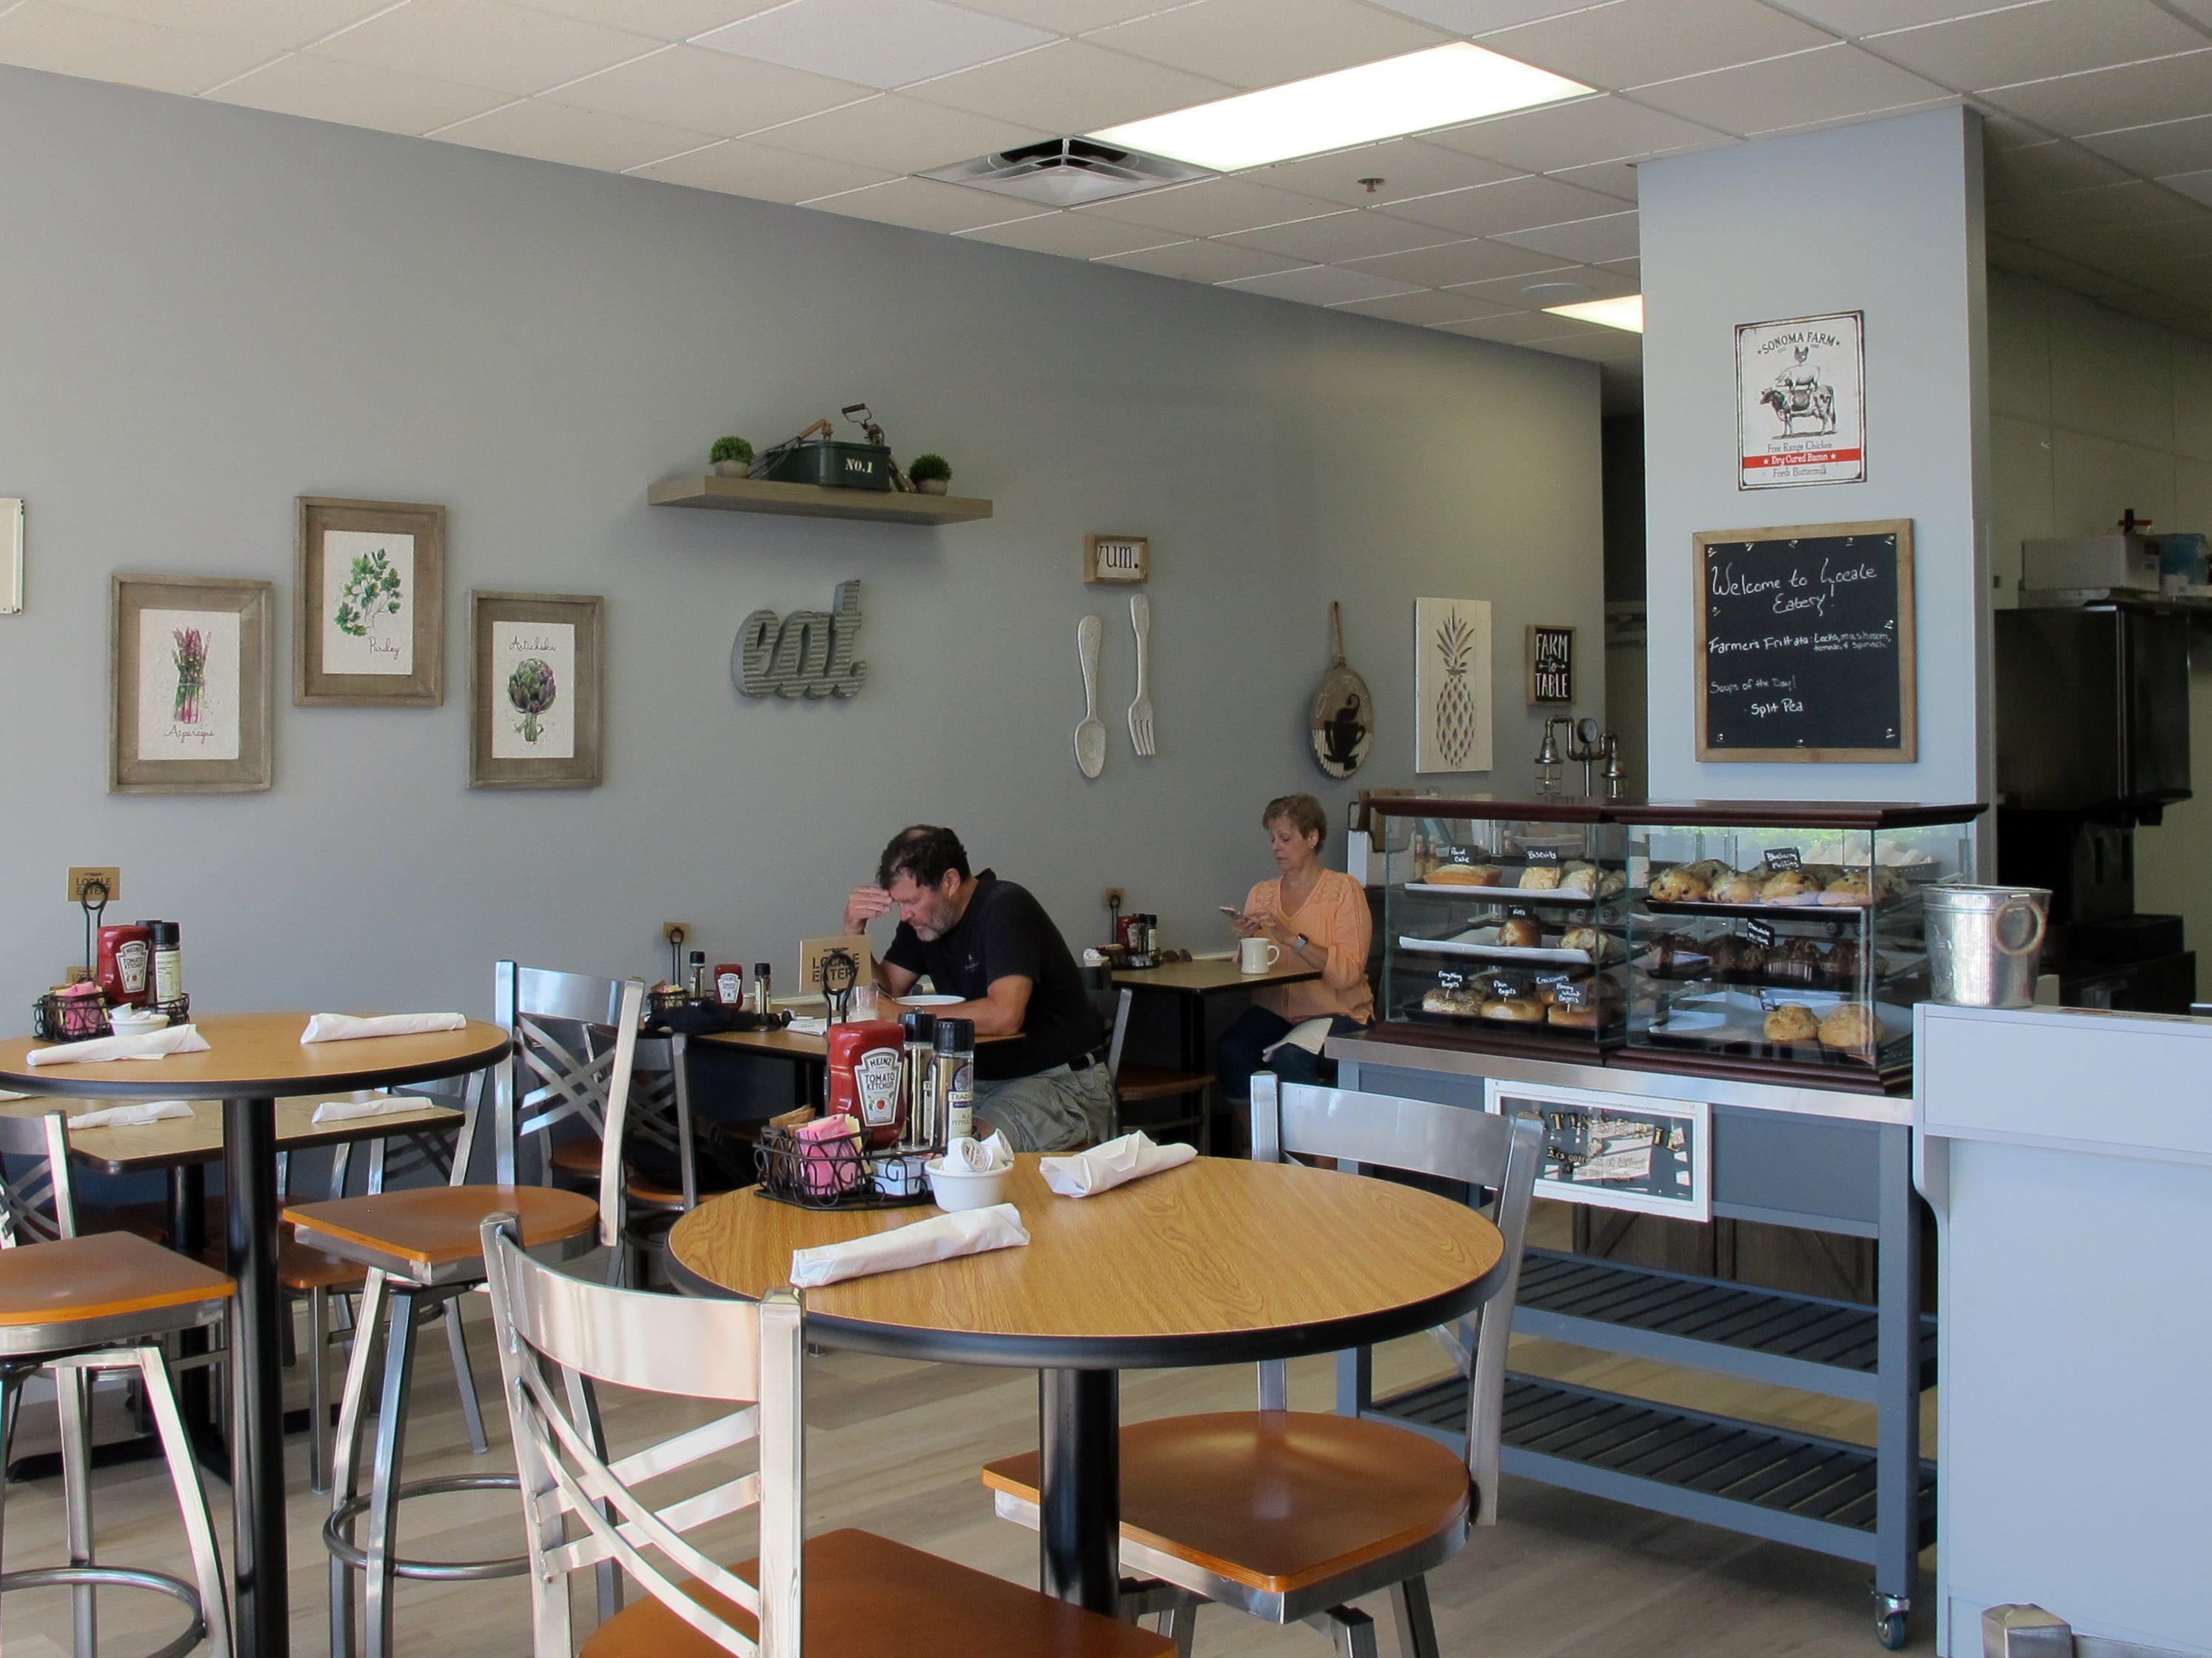 Seating is available inside and outside at Locale Eatery, the new local café for breakfast, brunch and lunch that replaced Sweet Caroline's near NCH North Naples Hospital campus where Goodlette-Frank Road ends at Immokalee Road.